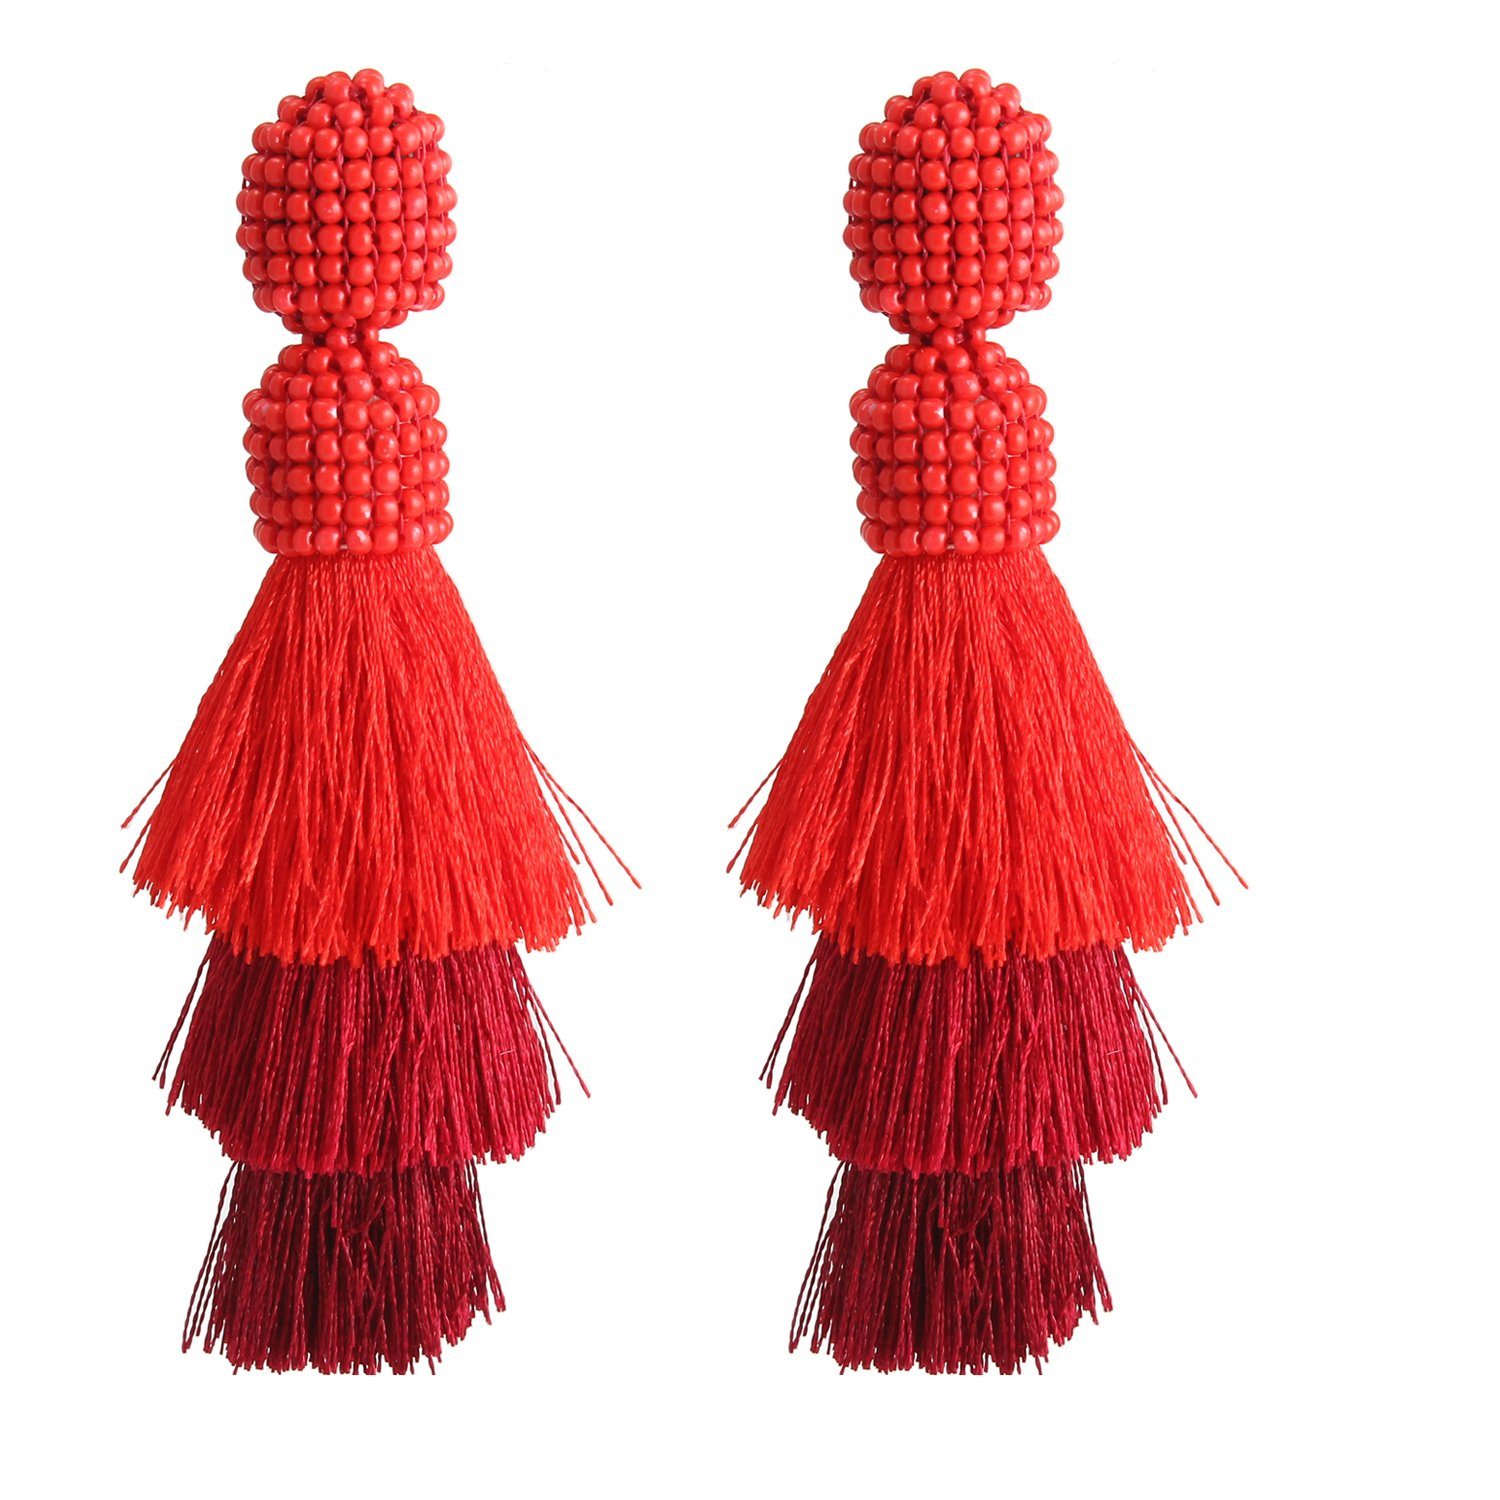 Bohemian Beaded Tassel Earrings Tiered Layered Statement Fringe Drop Earring (Red) by Bonnie (Image #1)